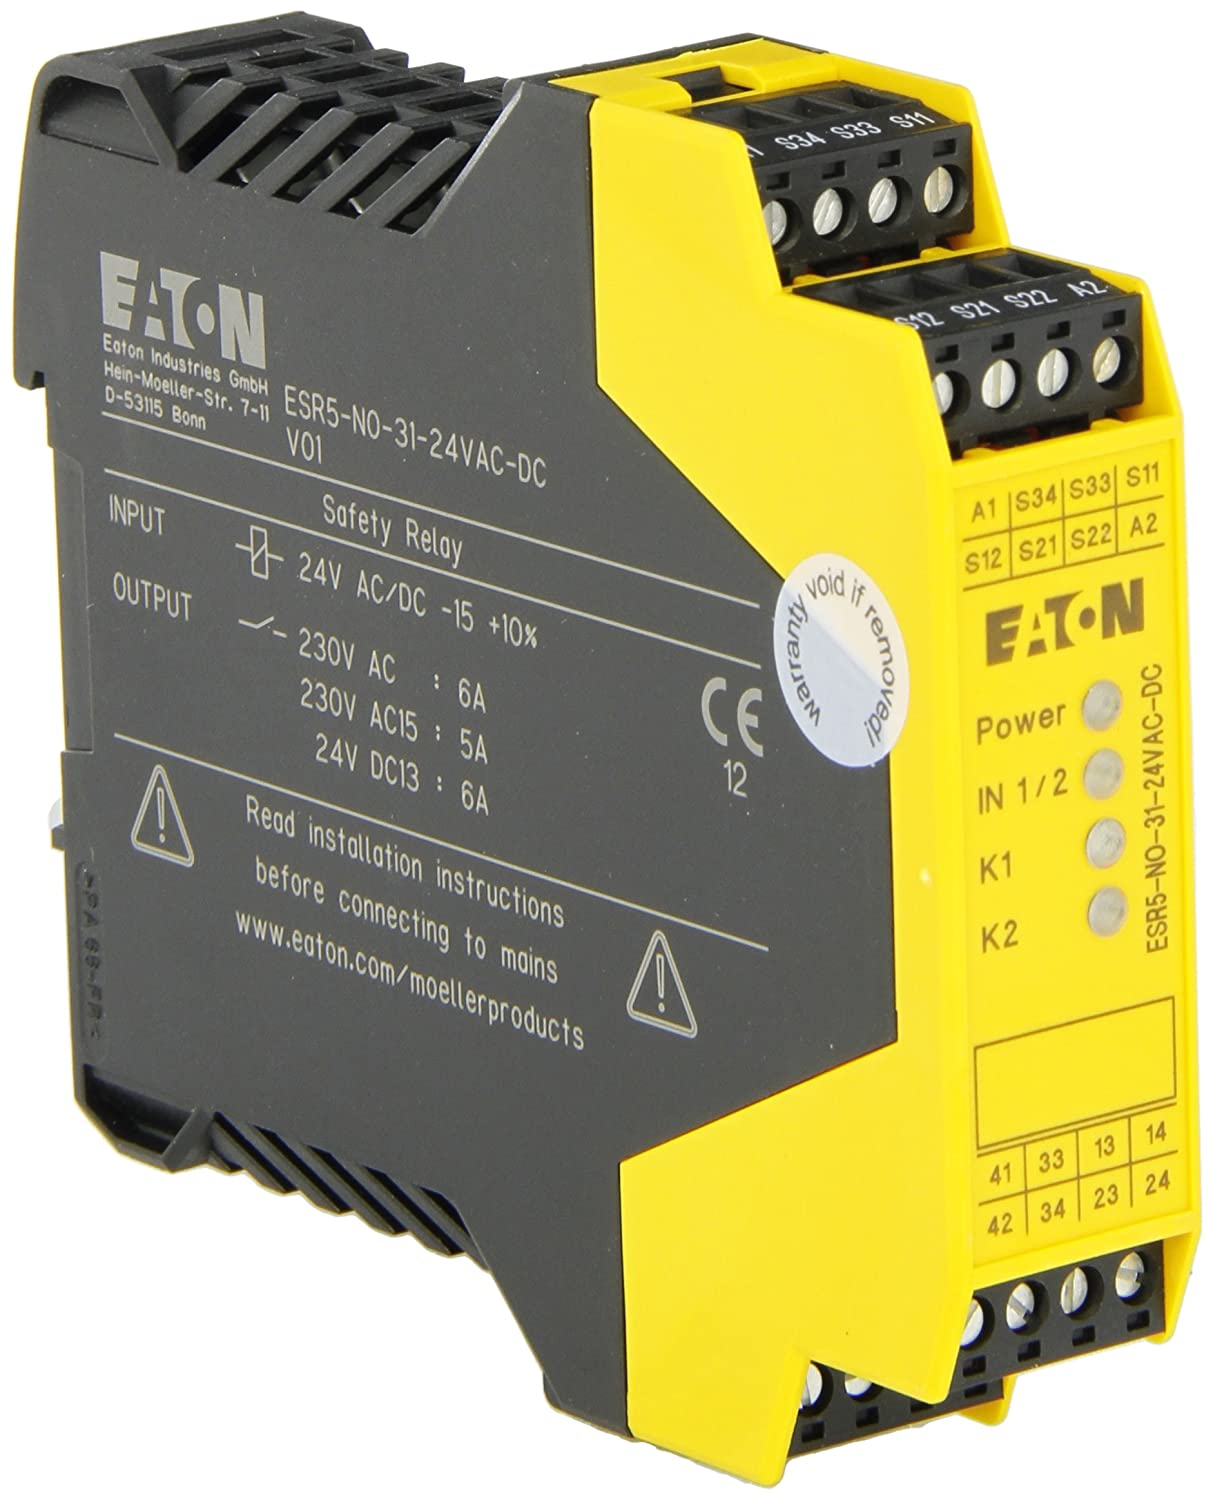 Eaton Esr5 No 31 24vac Dc Safety Relay Single Dual Channel Main Basic Circuit Unit 3 Output 1 Nc Signal 24 Vac Control Voltage Electronic Relays